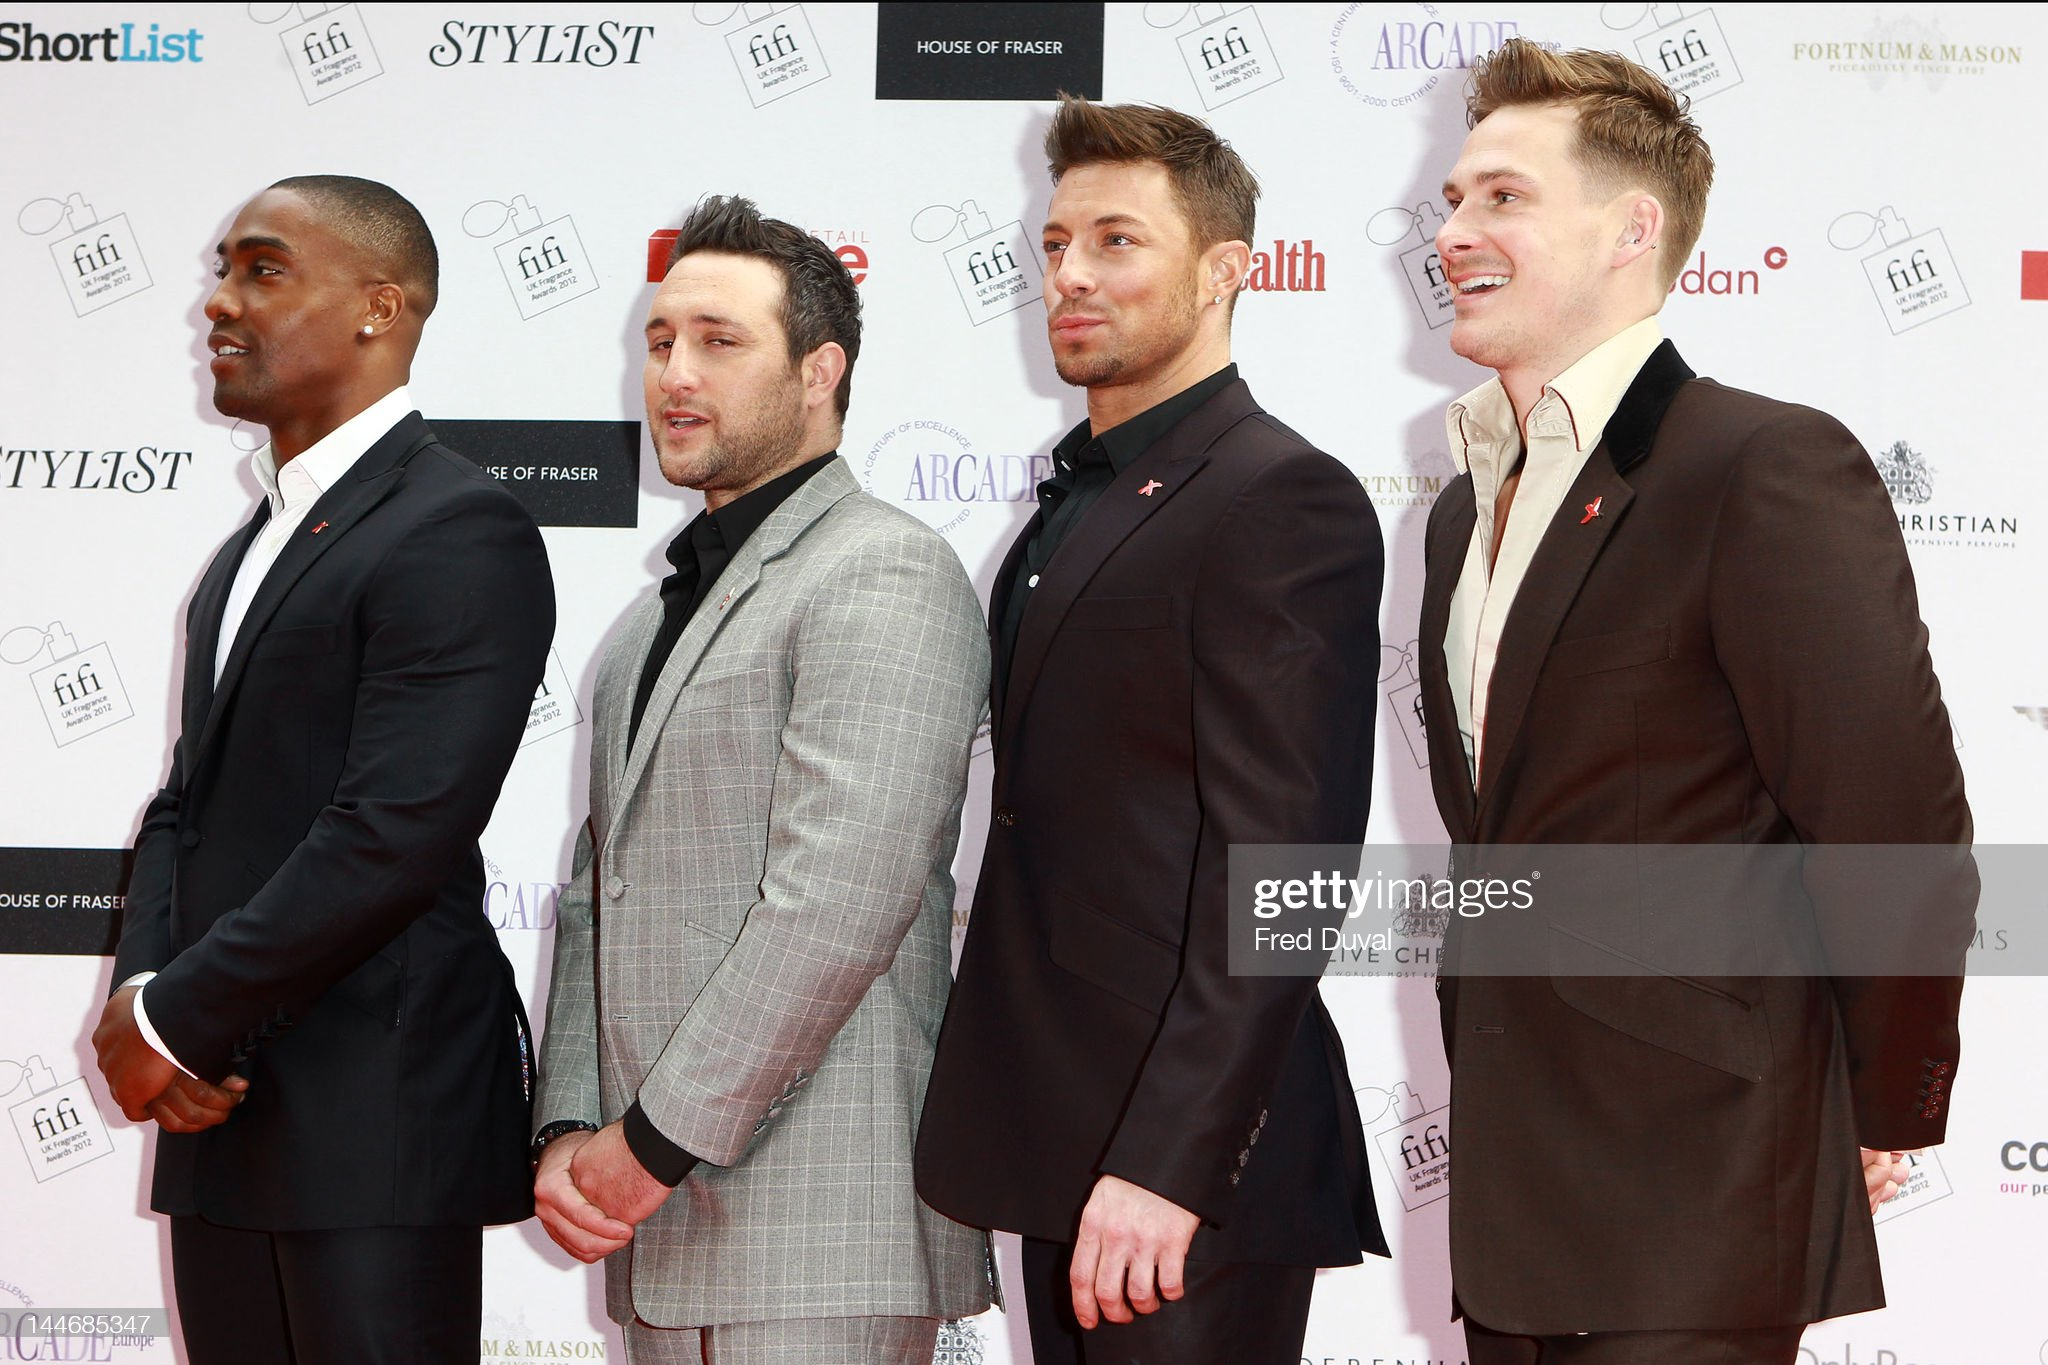 ¿Cuánto mide Antony Costa? - Real height Simon-webbe-antony-costa-duncan-james-and-lee-ryan-of-blue-attends-picture-id144685347?s=2048x2048